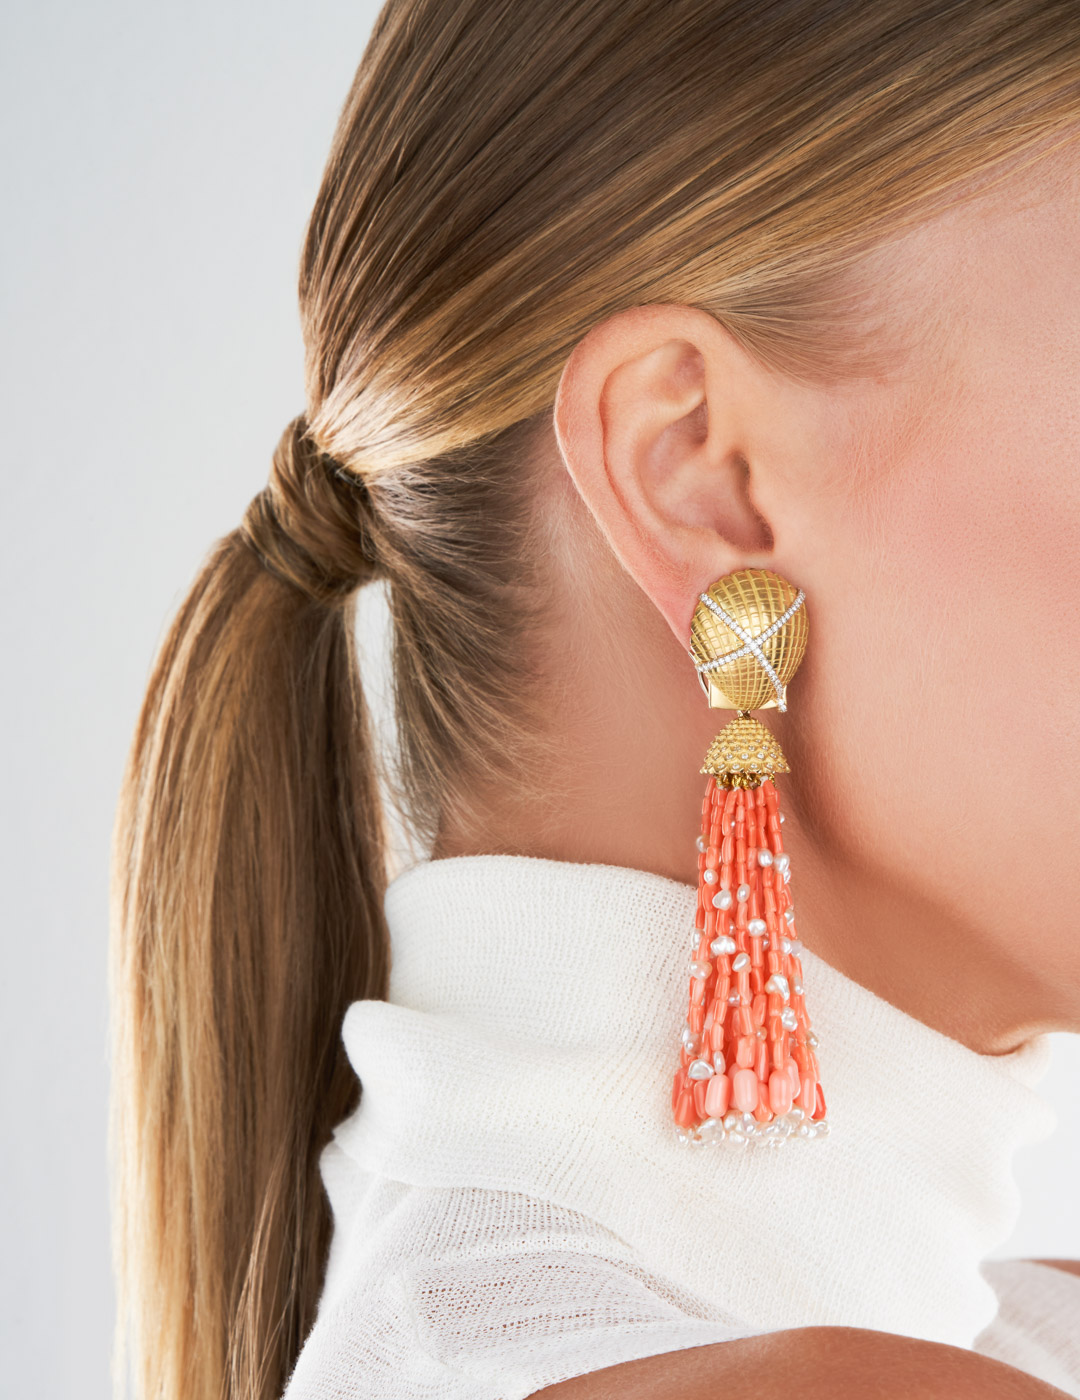 mish_products_earrings_Cabana-Scallop-Tassel-ER-2